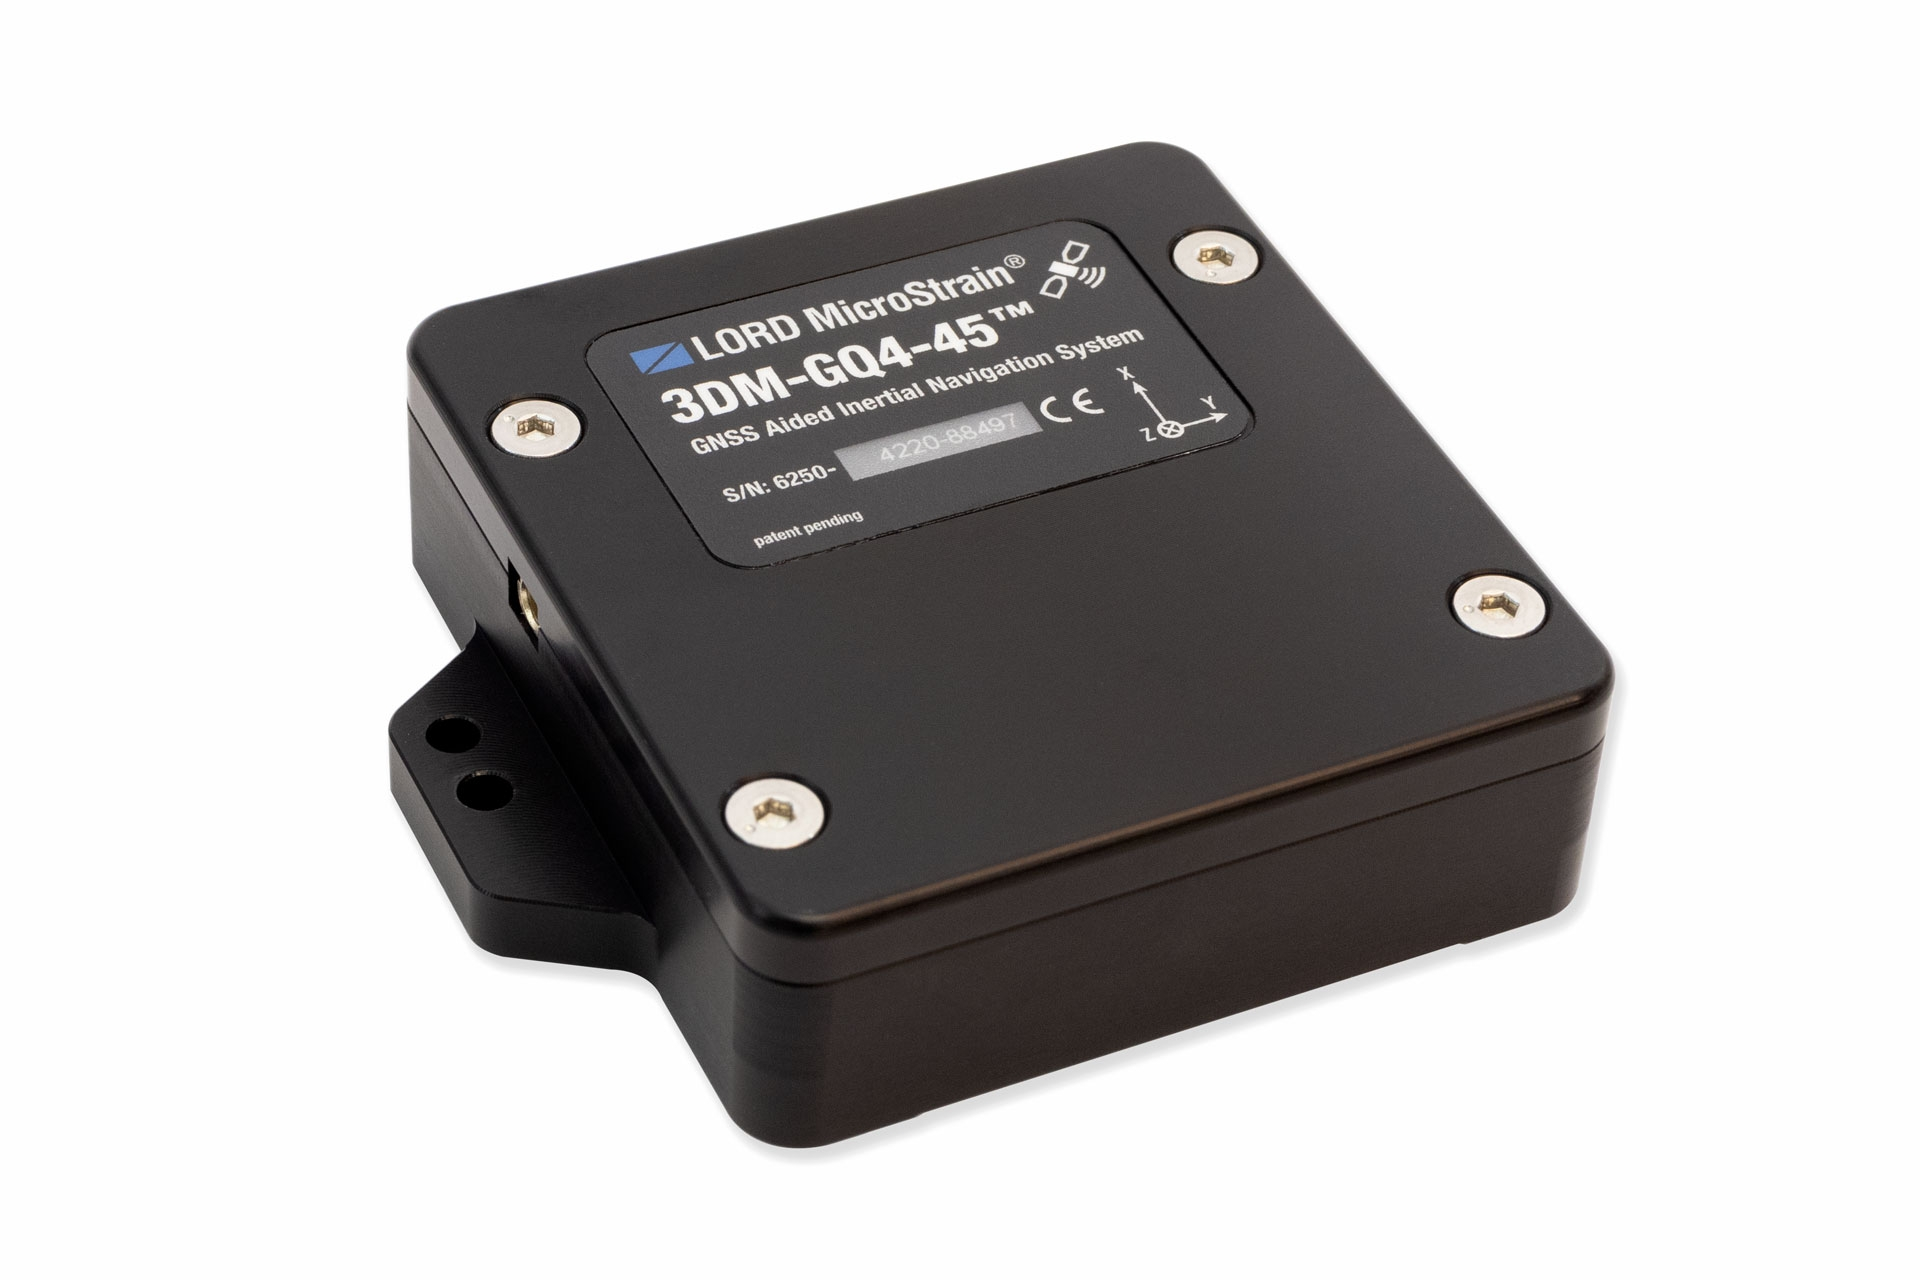 3DM-GQ4-45 GNSS/INS | LORD Sensing Systems